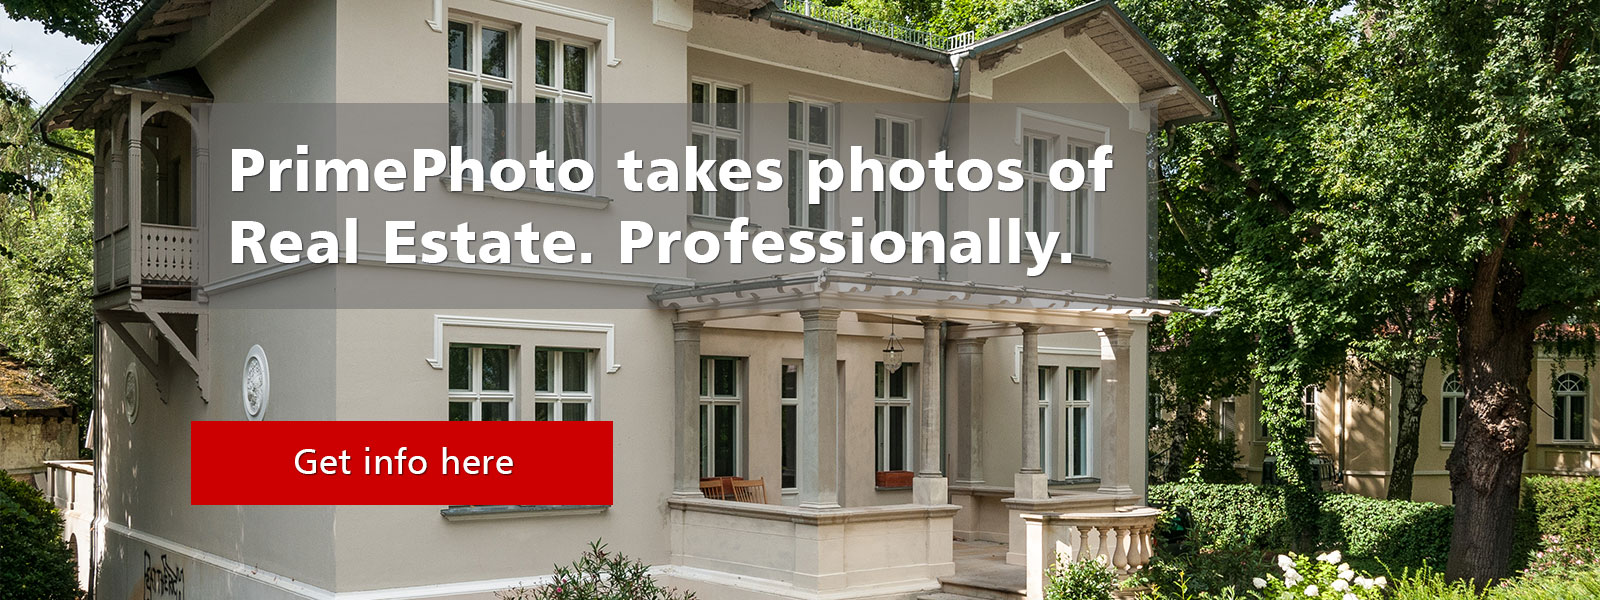 Professional real estate photos including first class image retouching.